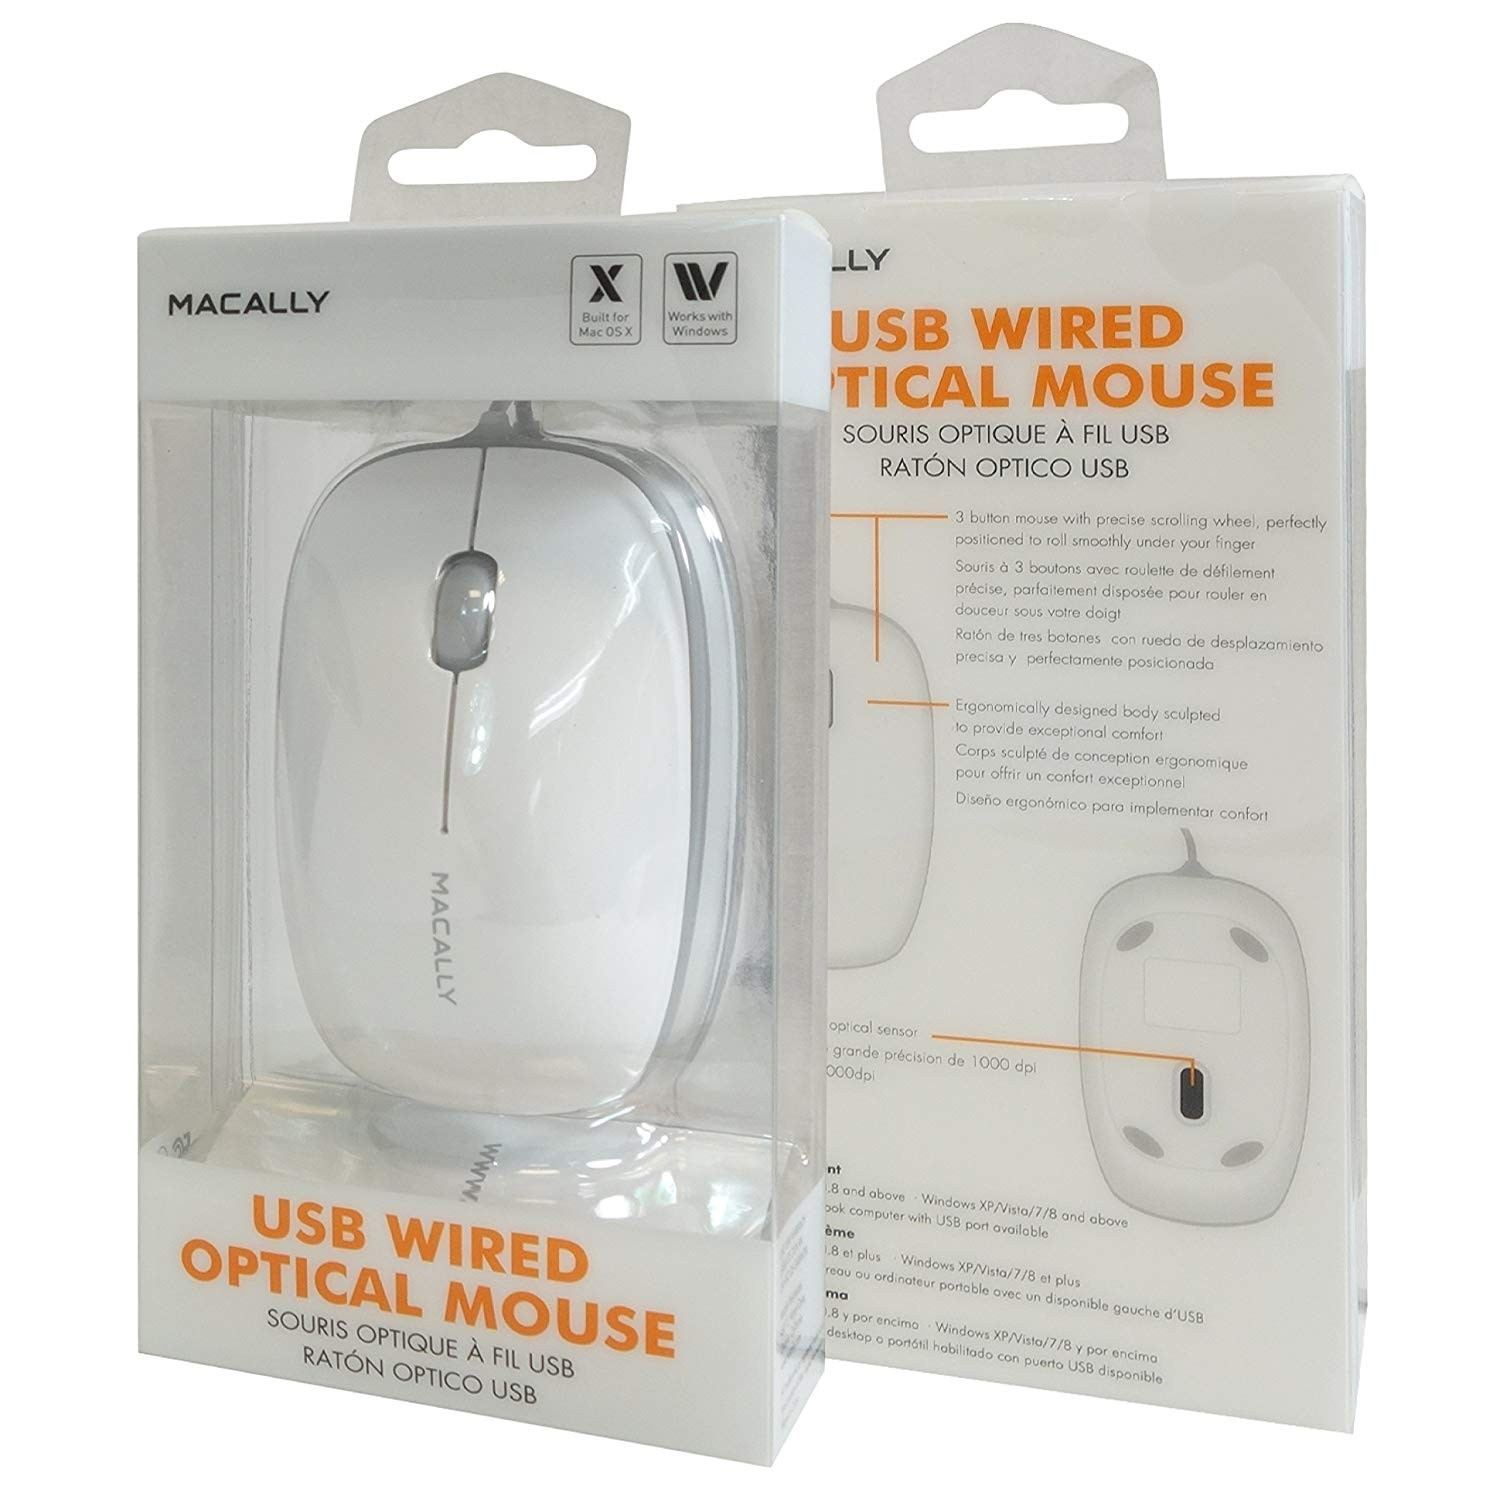 Macally Bumper Mouse 3 Button USB 800DPI Optical Computer Wired Mouse with 4 Foot Cord for Apple Mac and Windows PC Laptop - White, BUMPERMOUSE